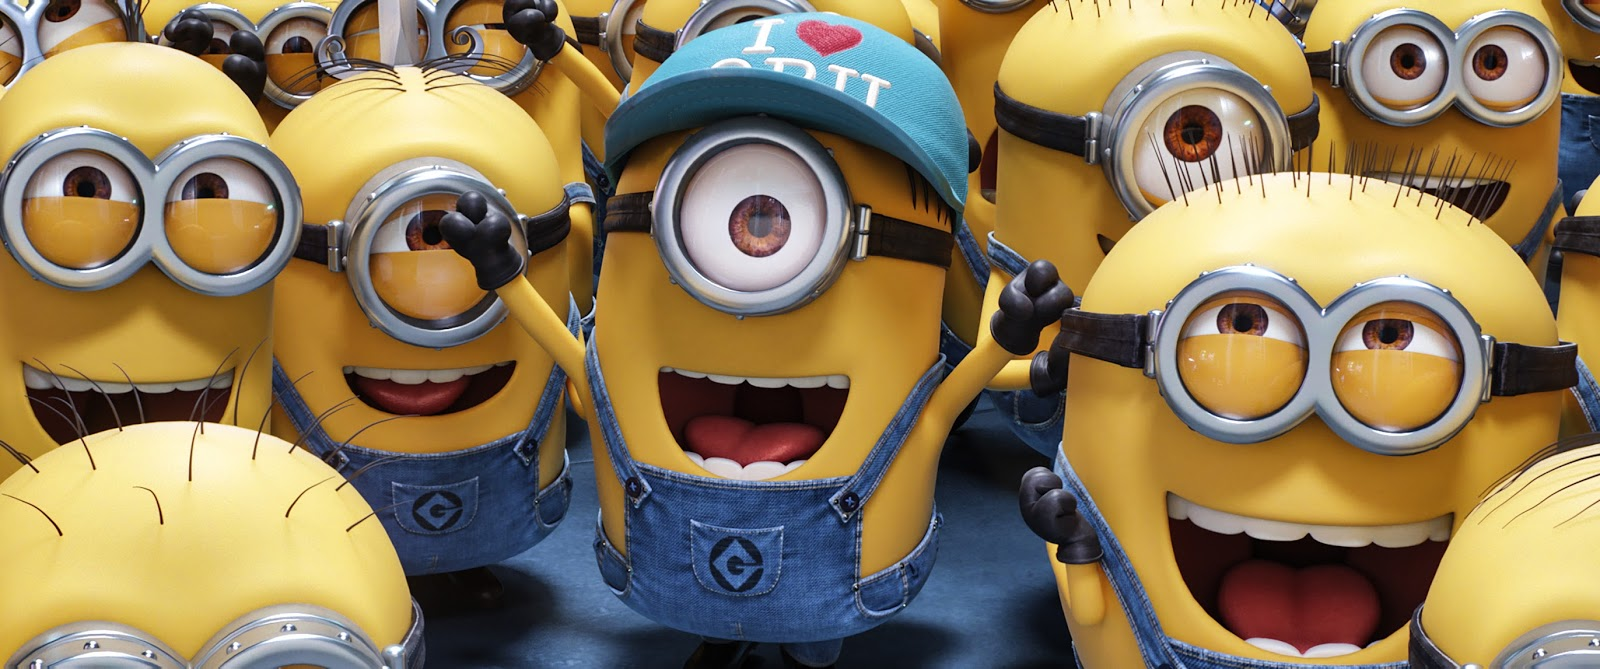 74b4aaa1b3018 Giving us hours of Minion fun to keep us laughing and enjoying our family  game nights this summer.